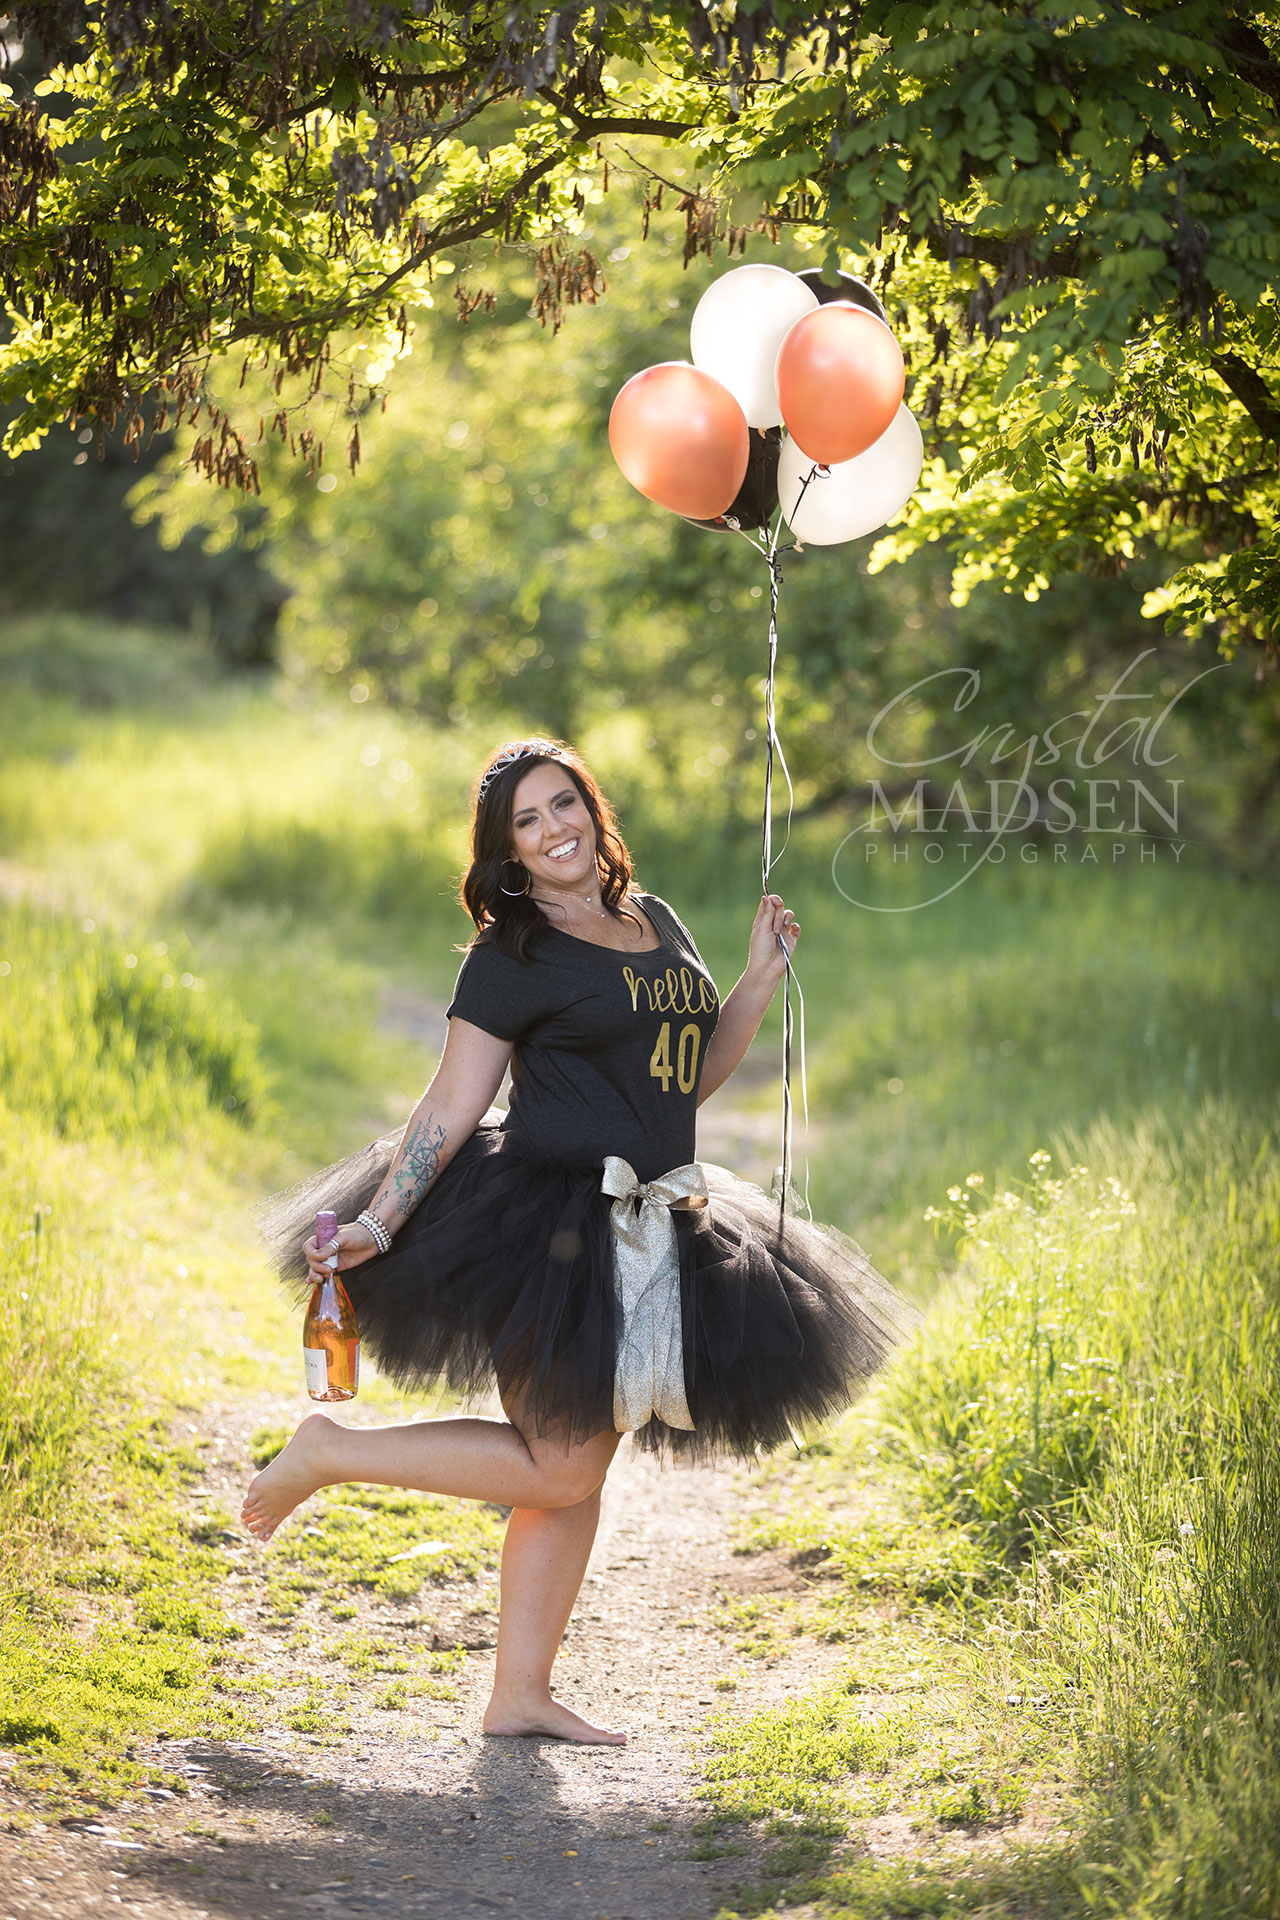 40 year old birthday girl with balloons and tutu